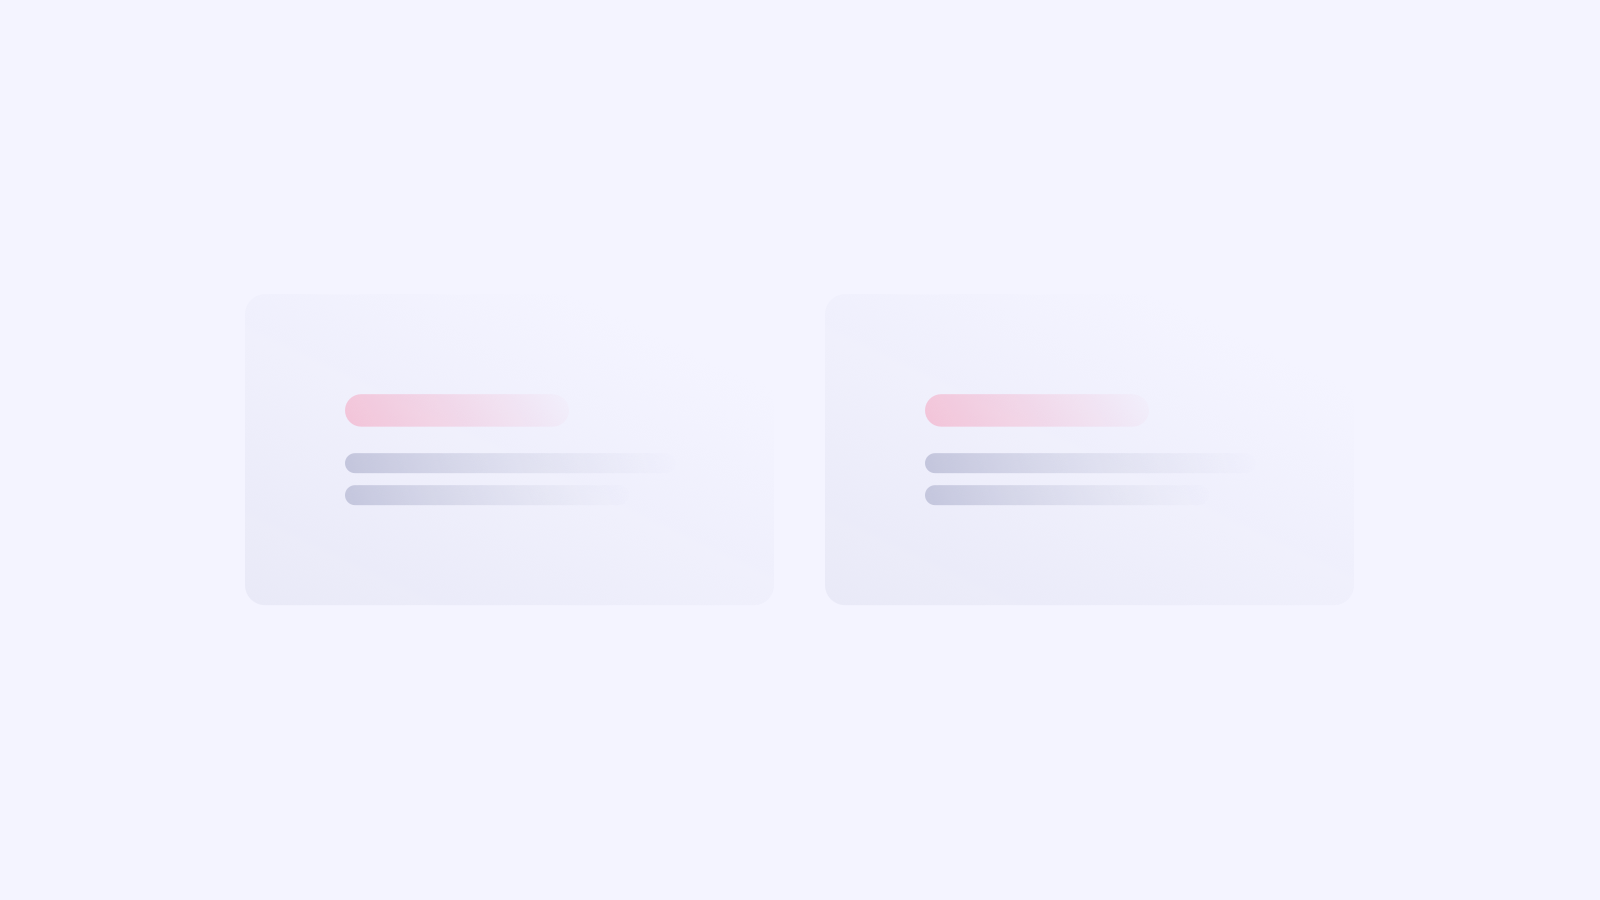 These two blocks have the content with the same styling. The pink lines give the impression that they are related.